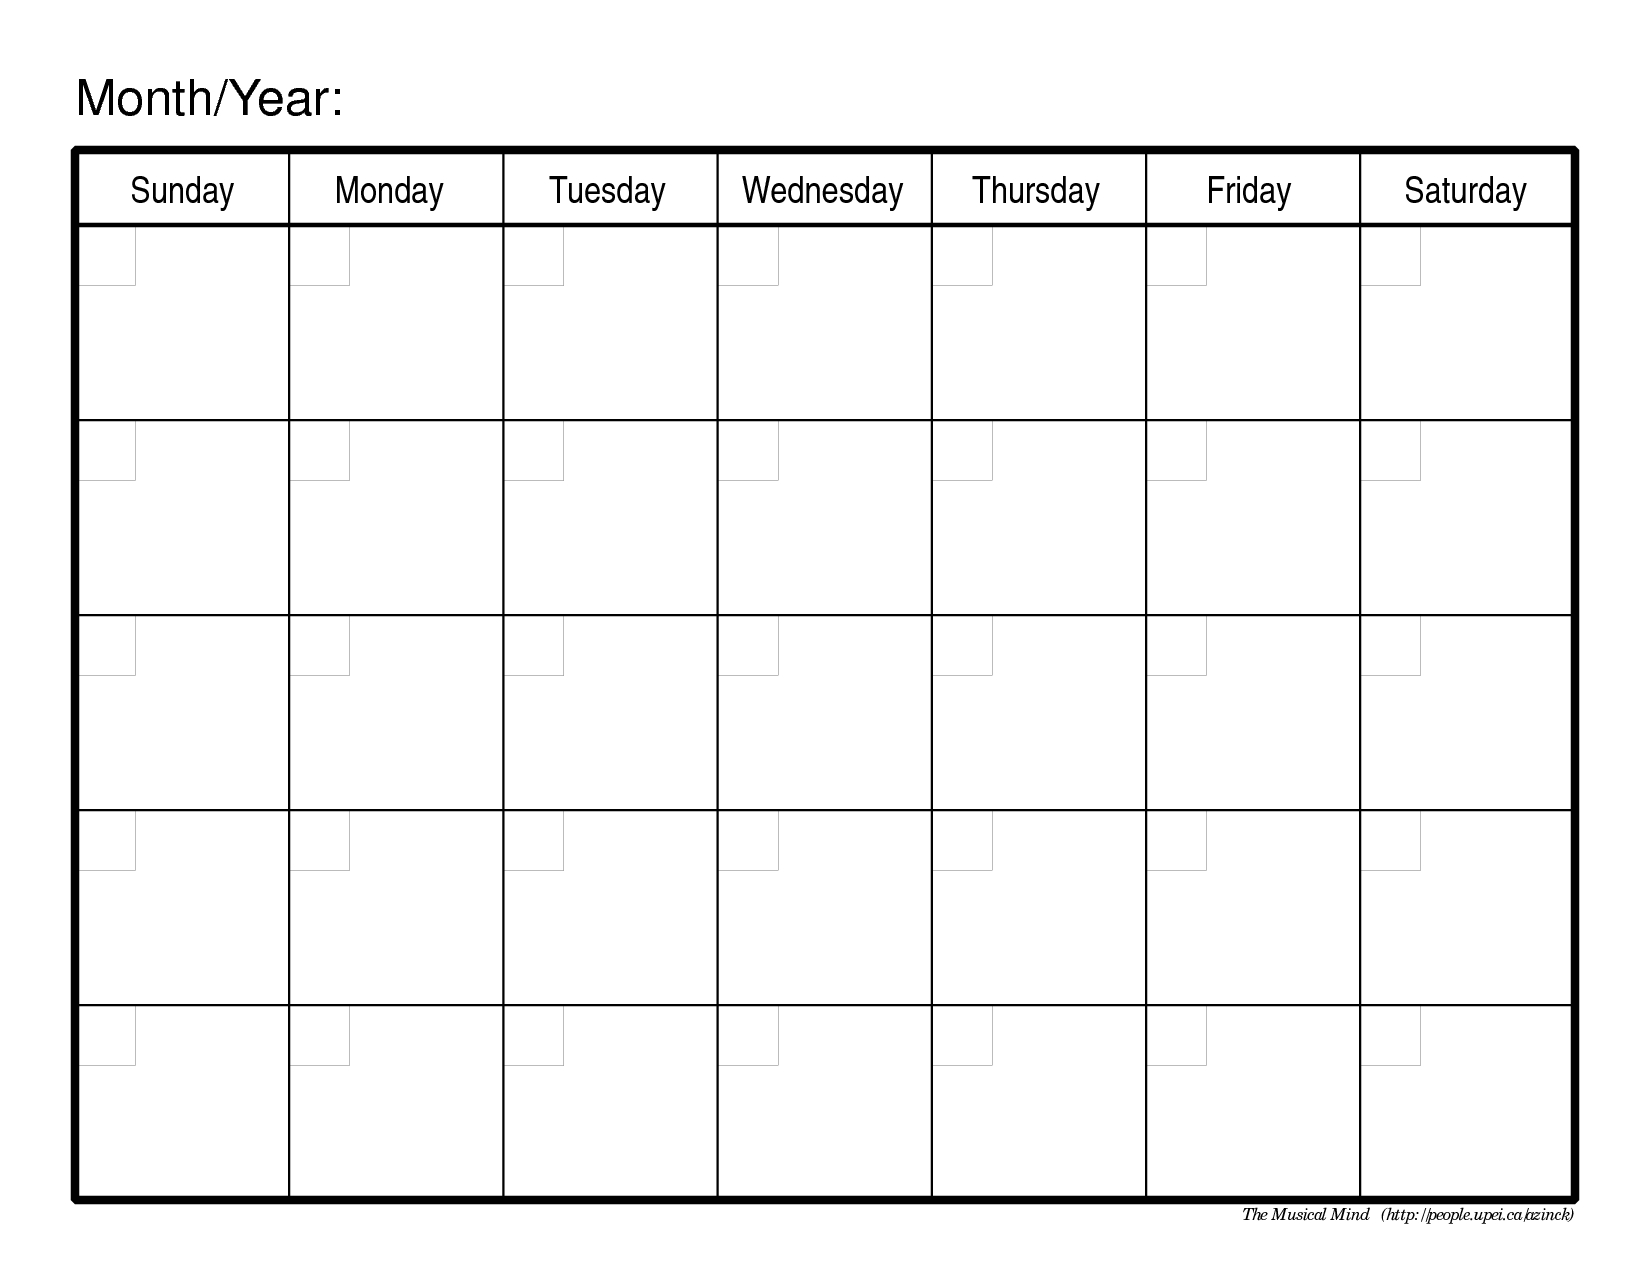 Monthly Calendar Template | Free Printable Calendar  Free Printable Month Calendar